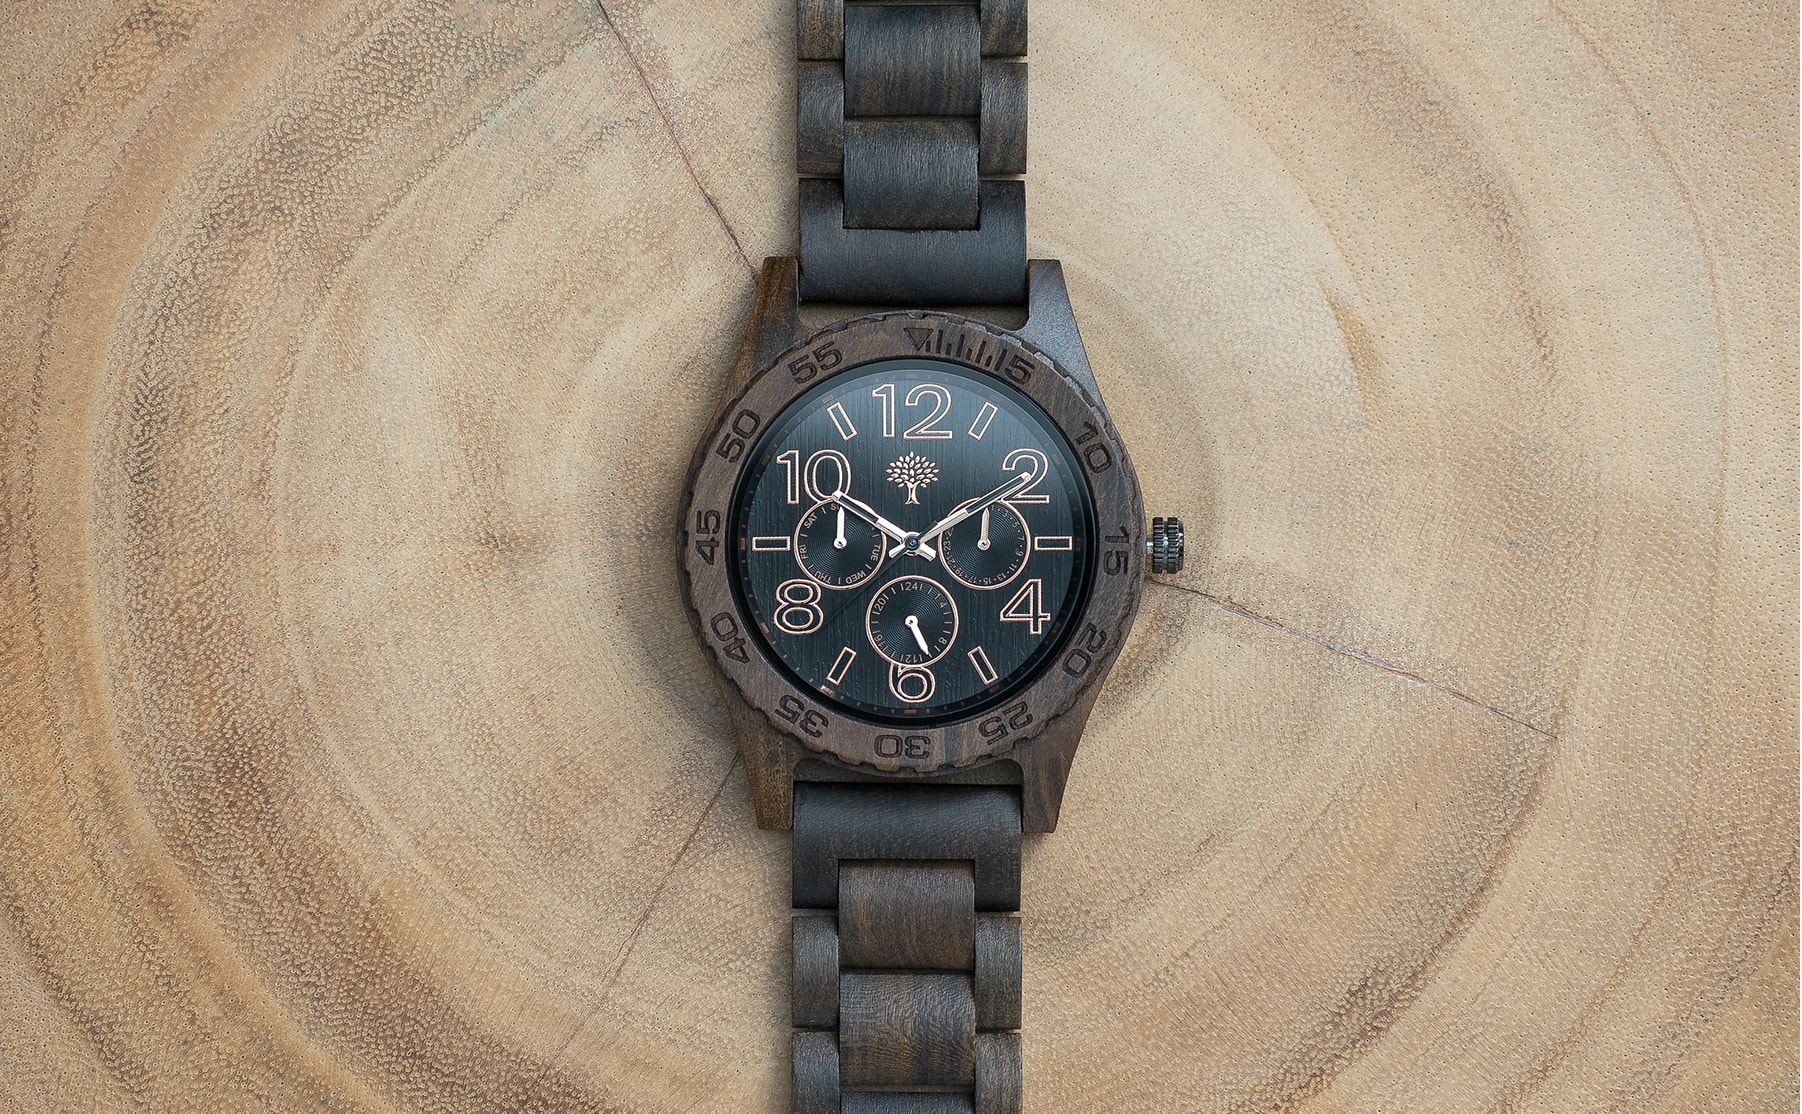 watches by karbon and customizable steel original watch true projects wood konifer stainless